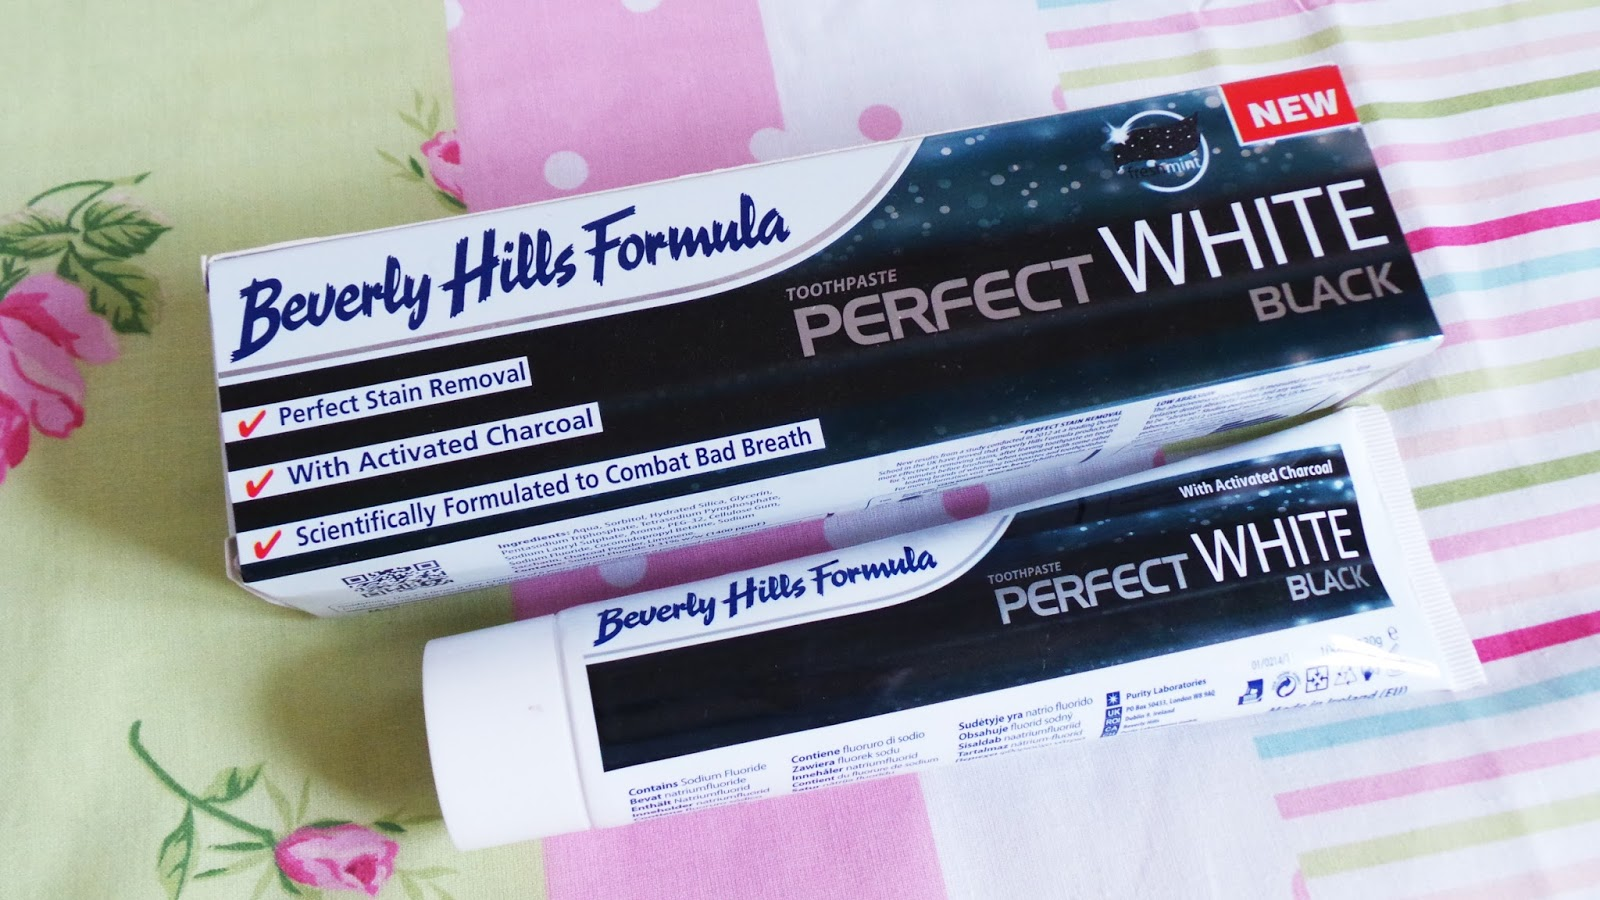 Beverly Hills Formula Perfect White, Black Anti-Ageing Toothpaste Review